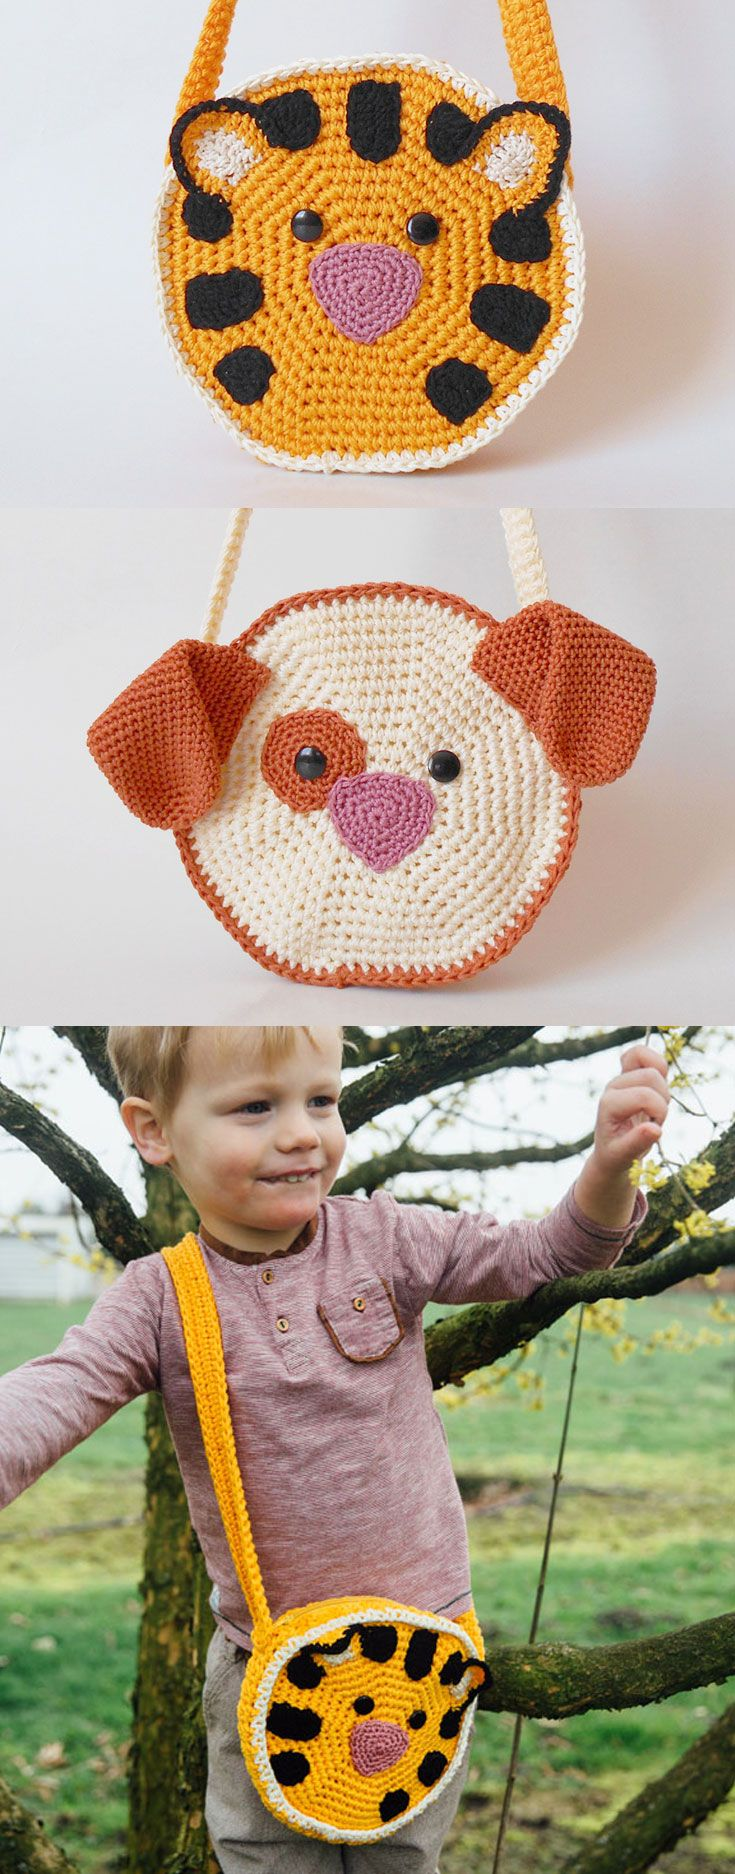 Tiger and dog cross body bags, a bigger size accessory to go with the kids on everyday adventures. A child's life is filled to the brim with different activities and outings, and what better way to keep it all organized than with cute and soft amigurumi bags?